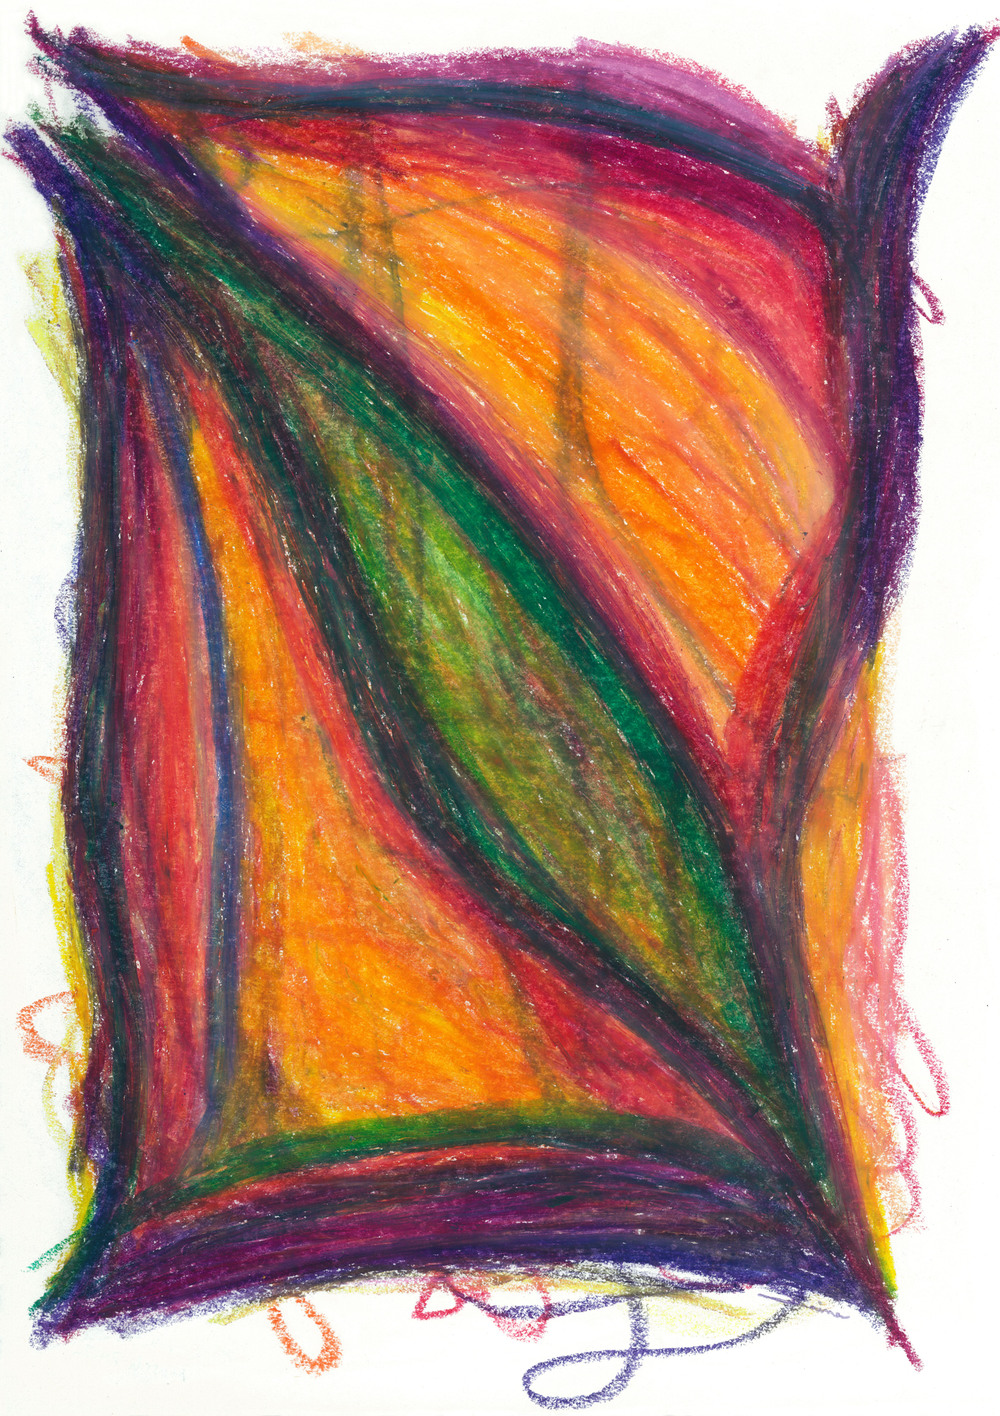 Divine Love, 2012, Oil Pastel, 11 x 14 in